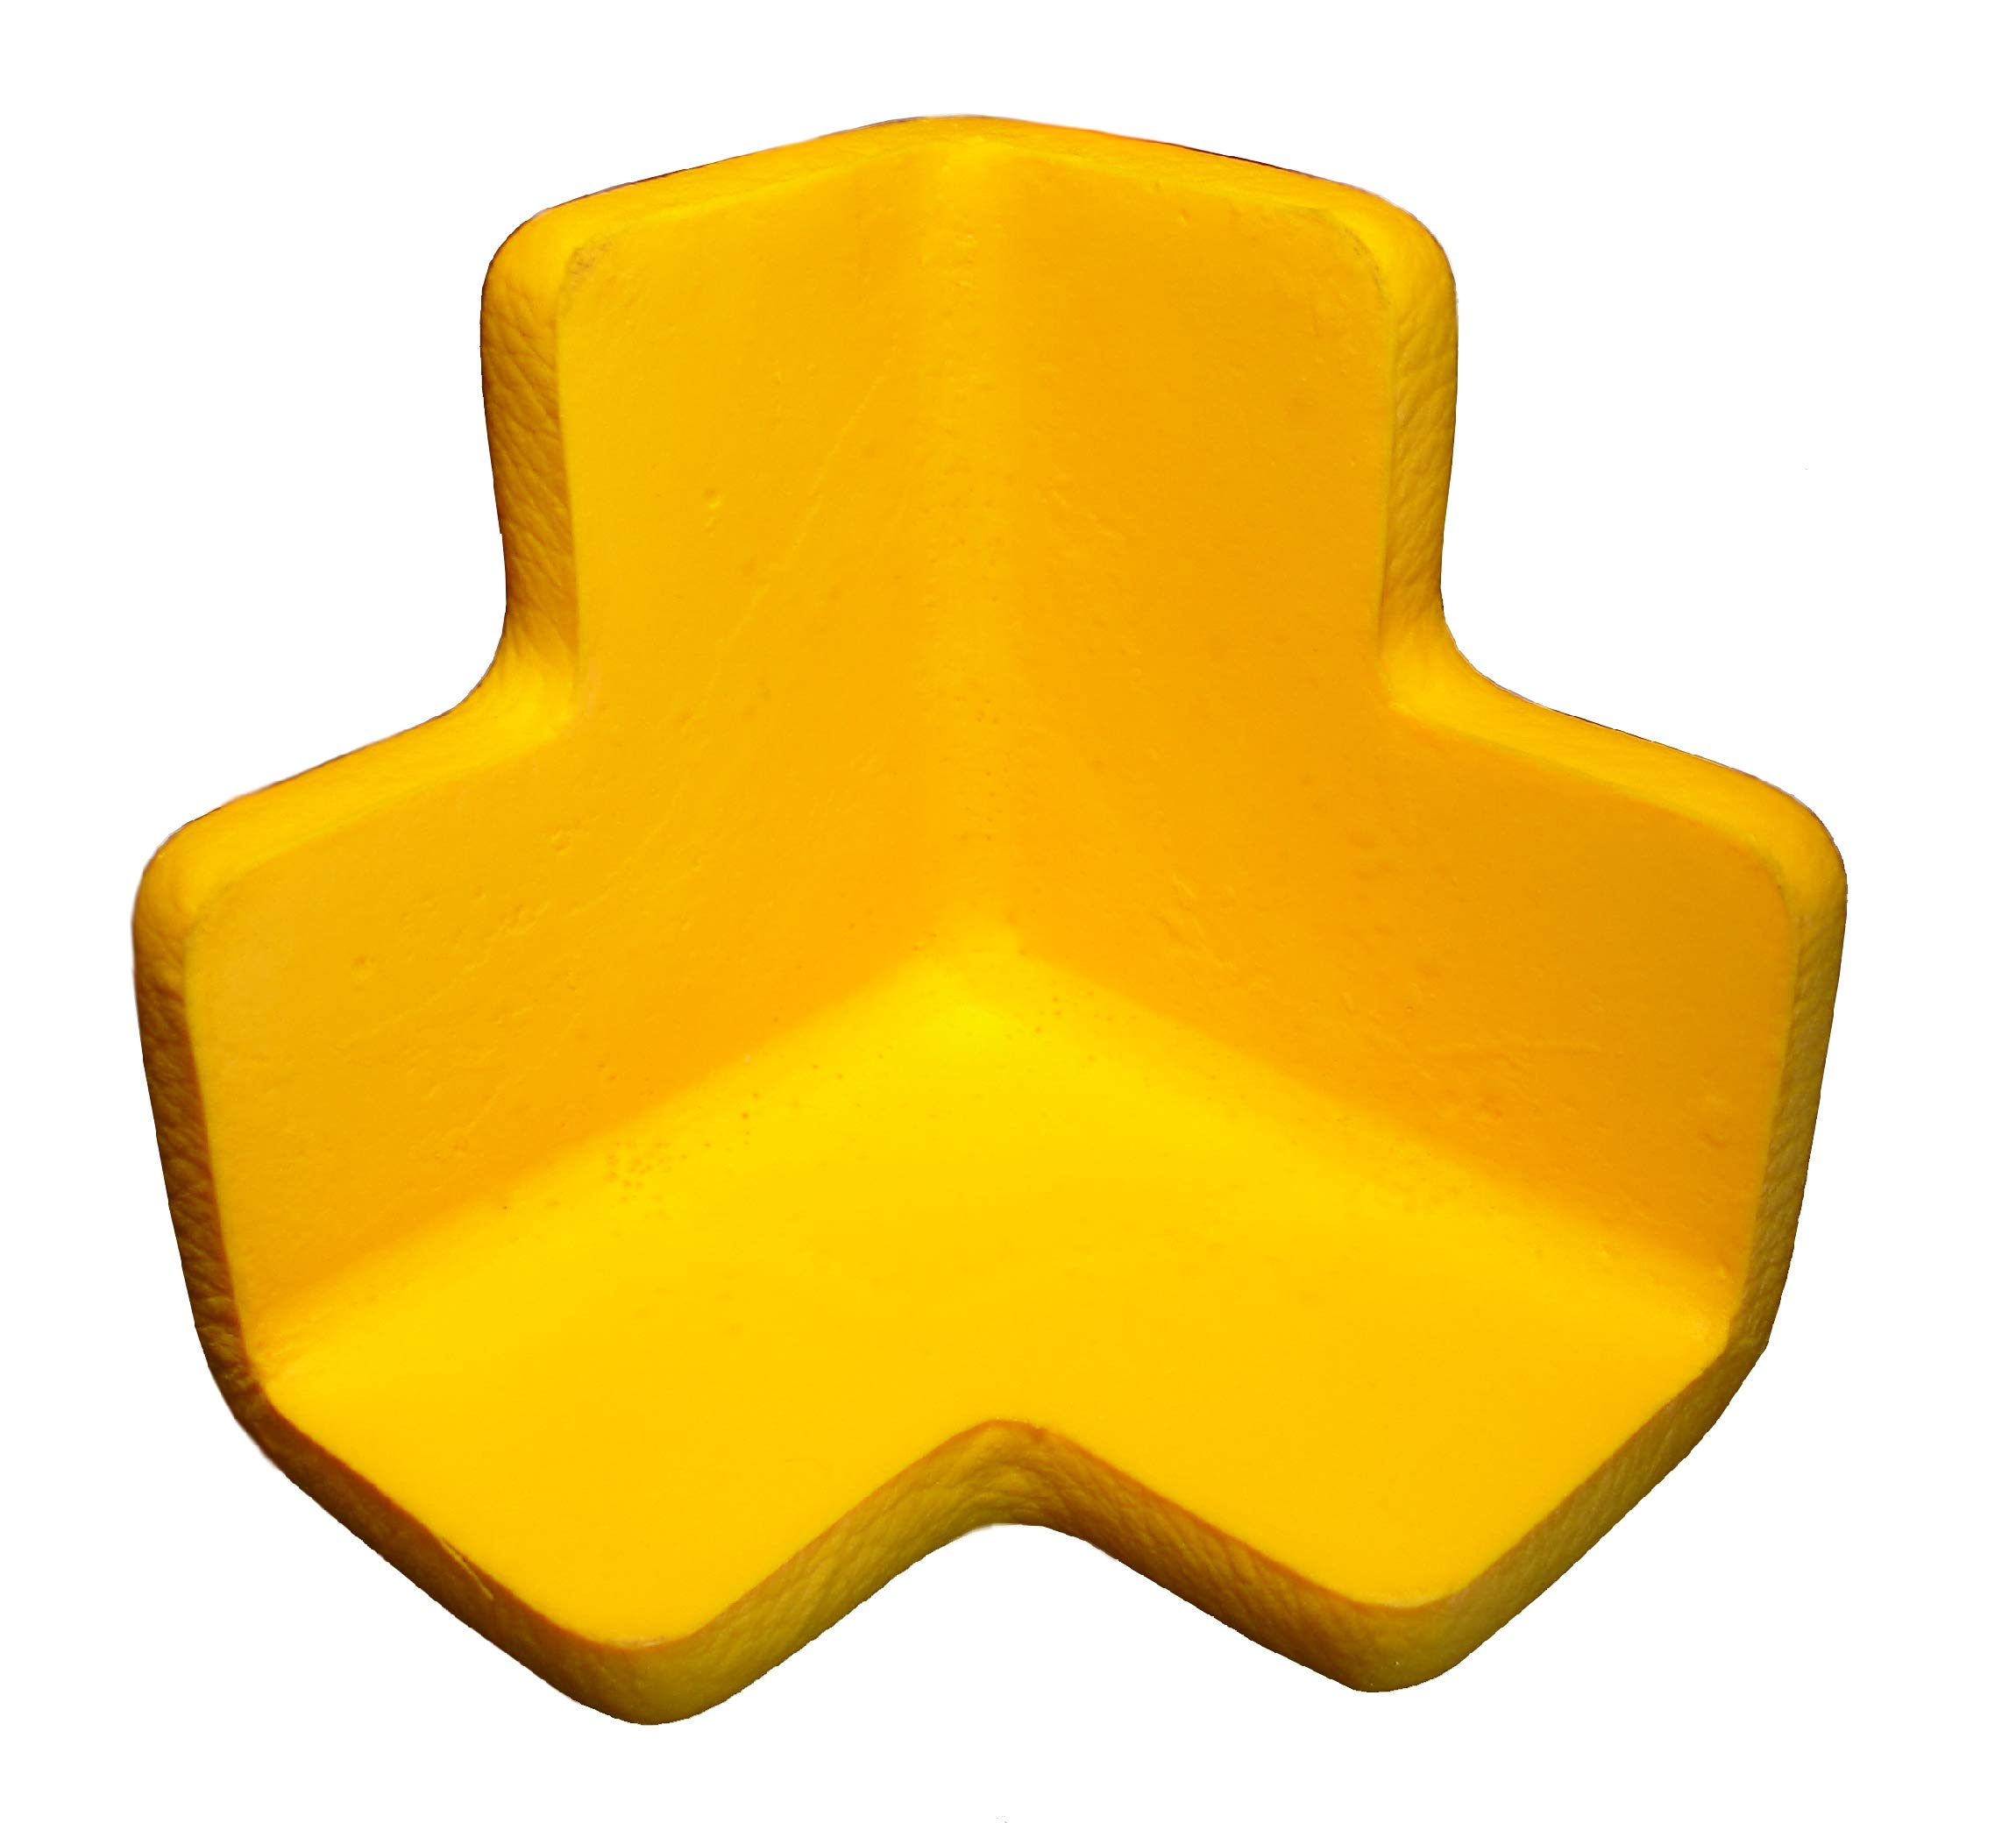 Boing Safety | 3D Jumbo Foam Corner Guards | 4 Pack | Black by BOINGSAFETY.COM (Image #4)